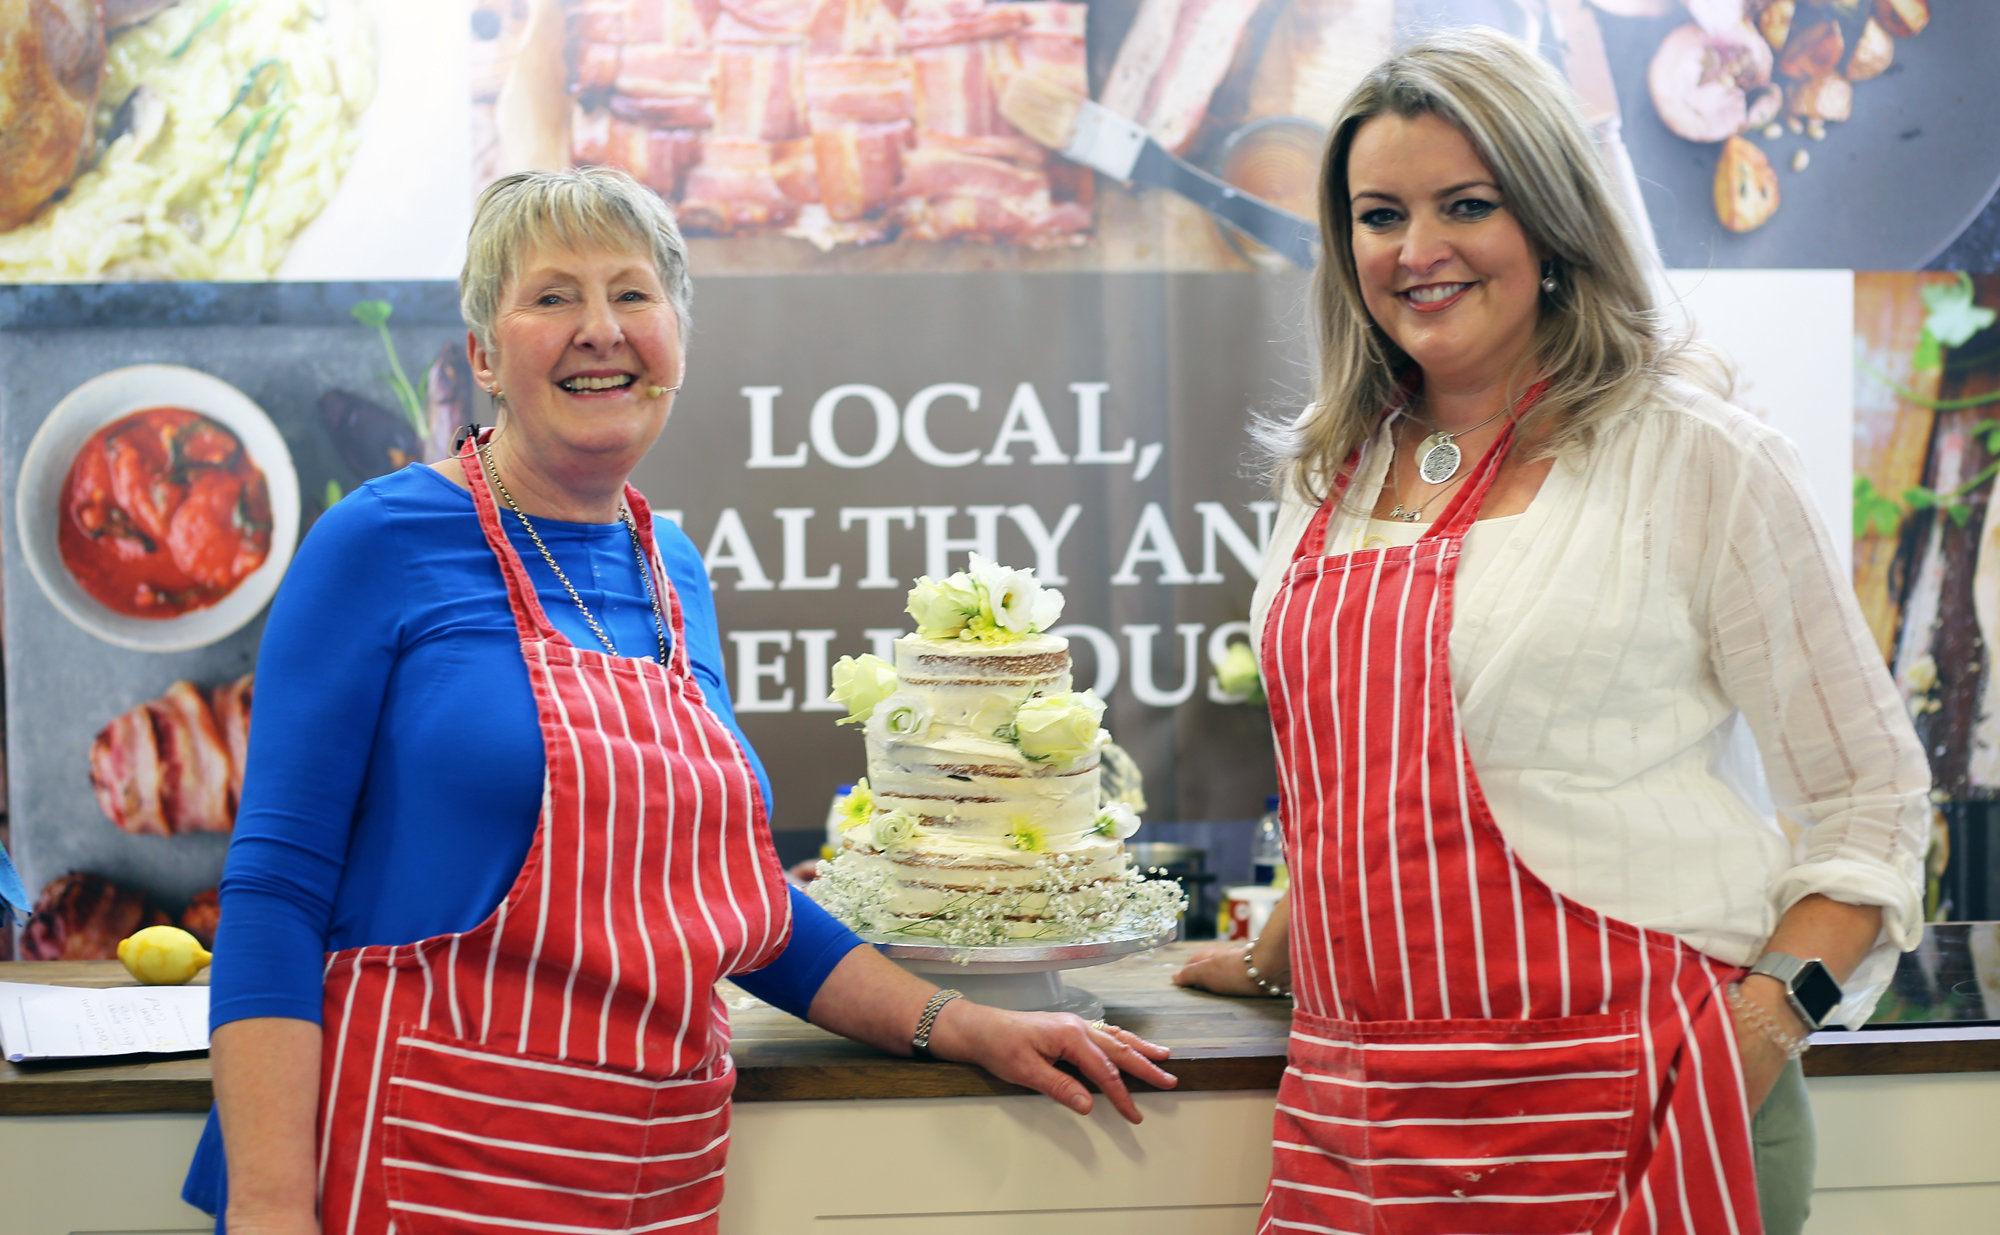 Bake Off's Val Stones and Louise Williams whip up a replica three-tiered, elderflower and lemon royal wedding cake, made with Welsh products donated by the exhibitors in the Food Hall.